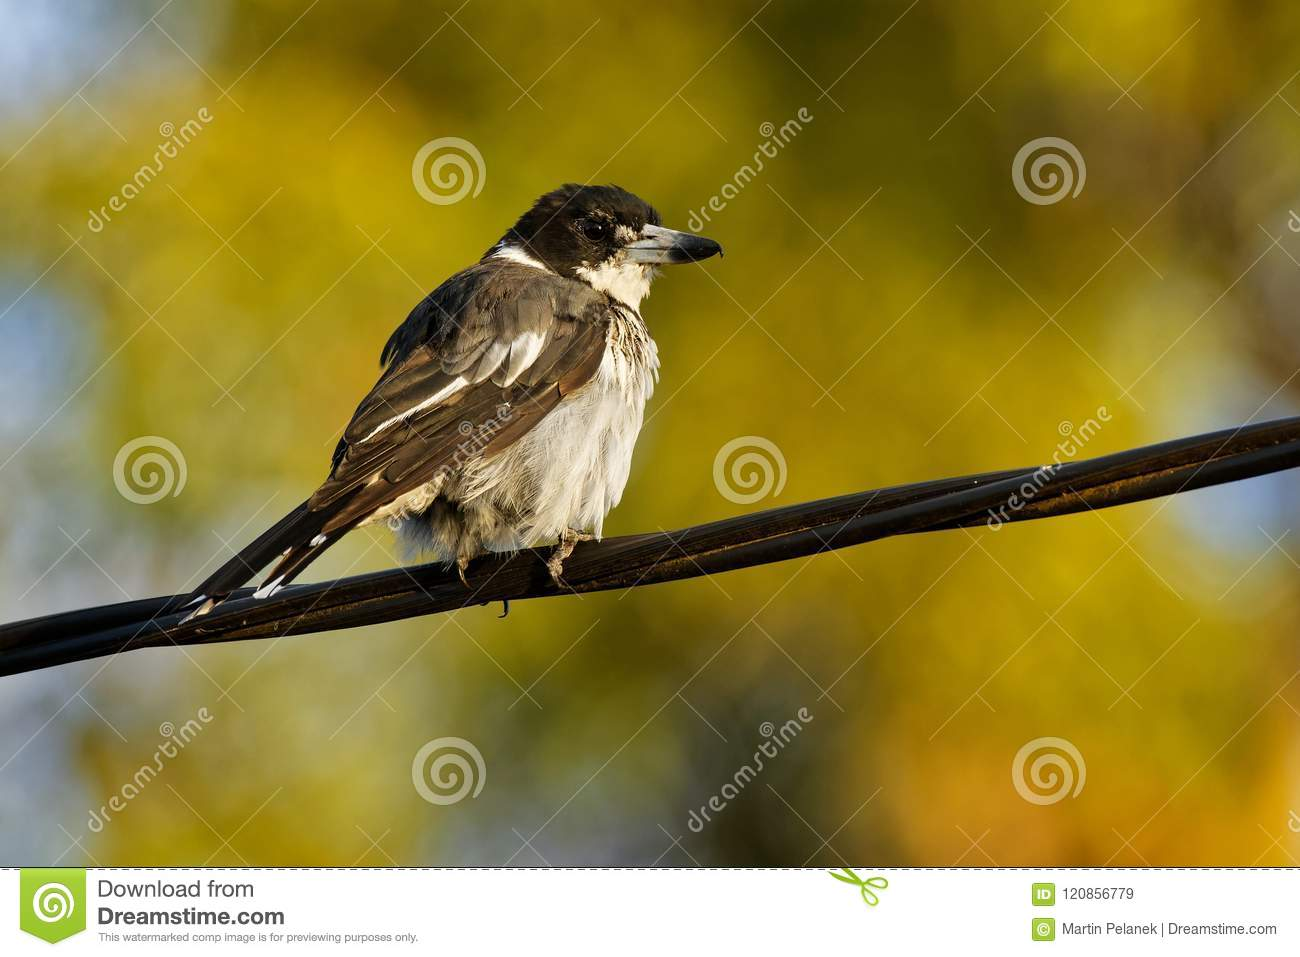 Grey butcherbird - Cracticus torquatus is a widely distributed species endemic to Australia, occurs in a range of different habit